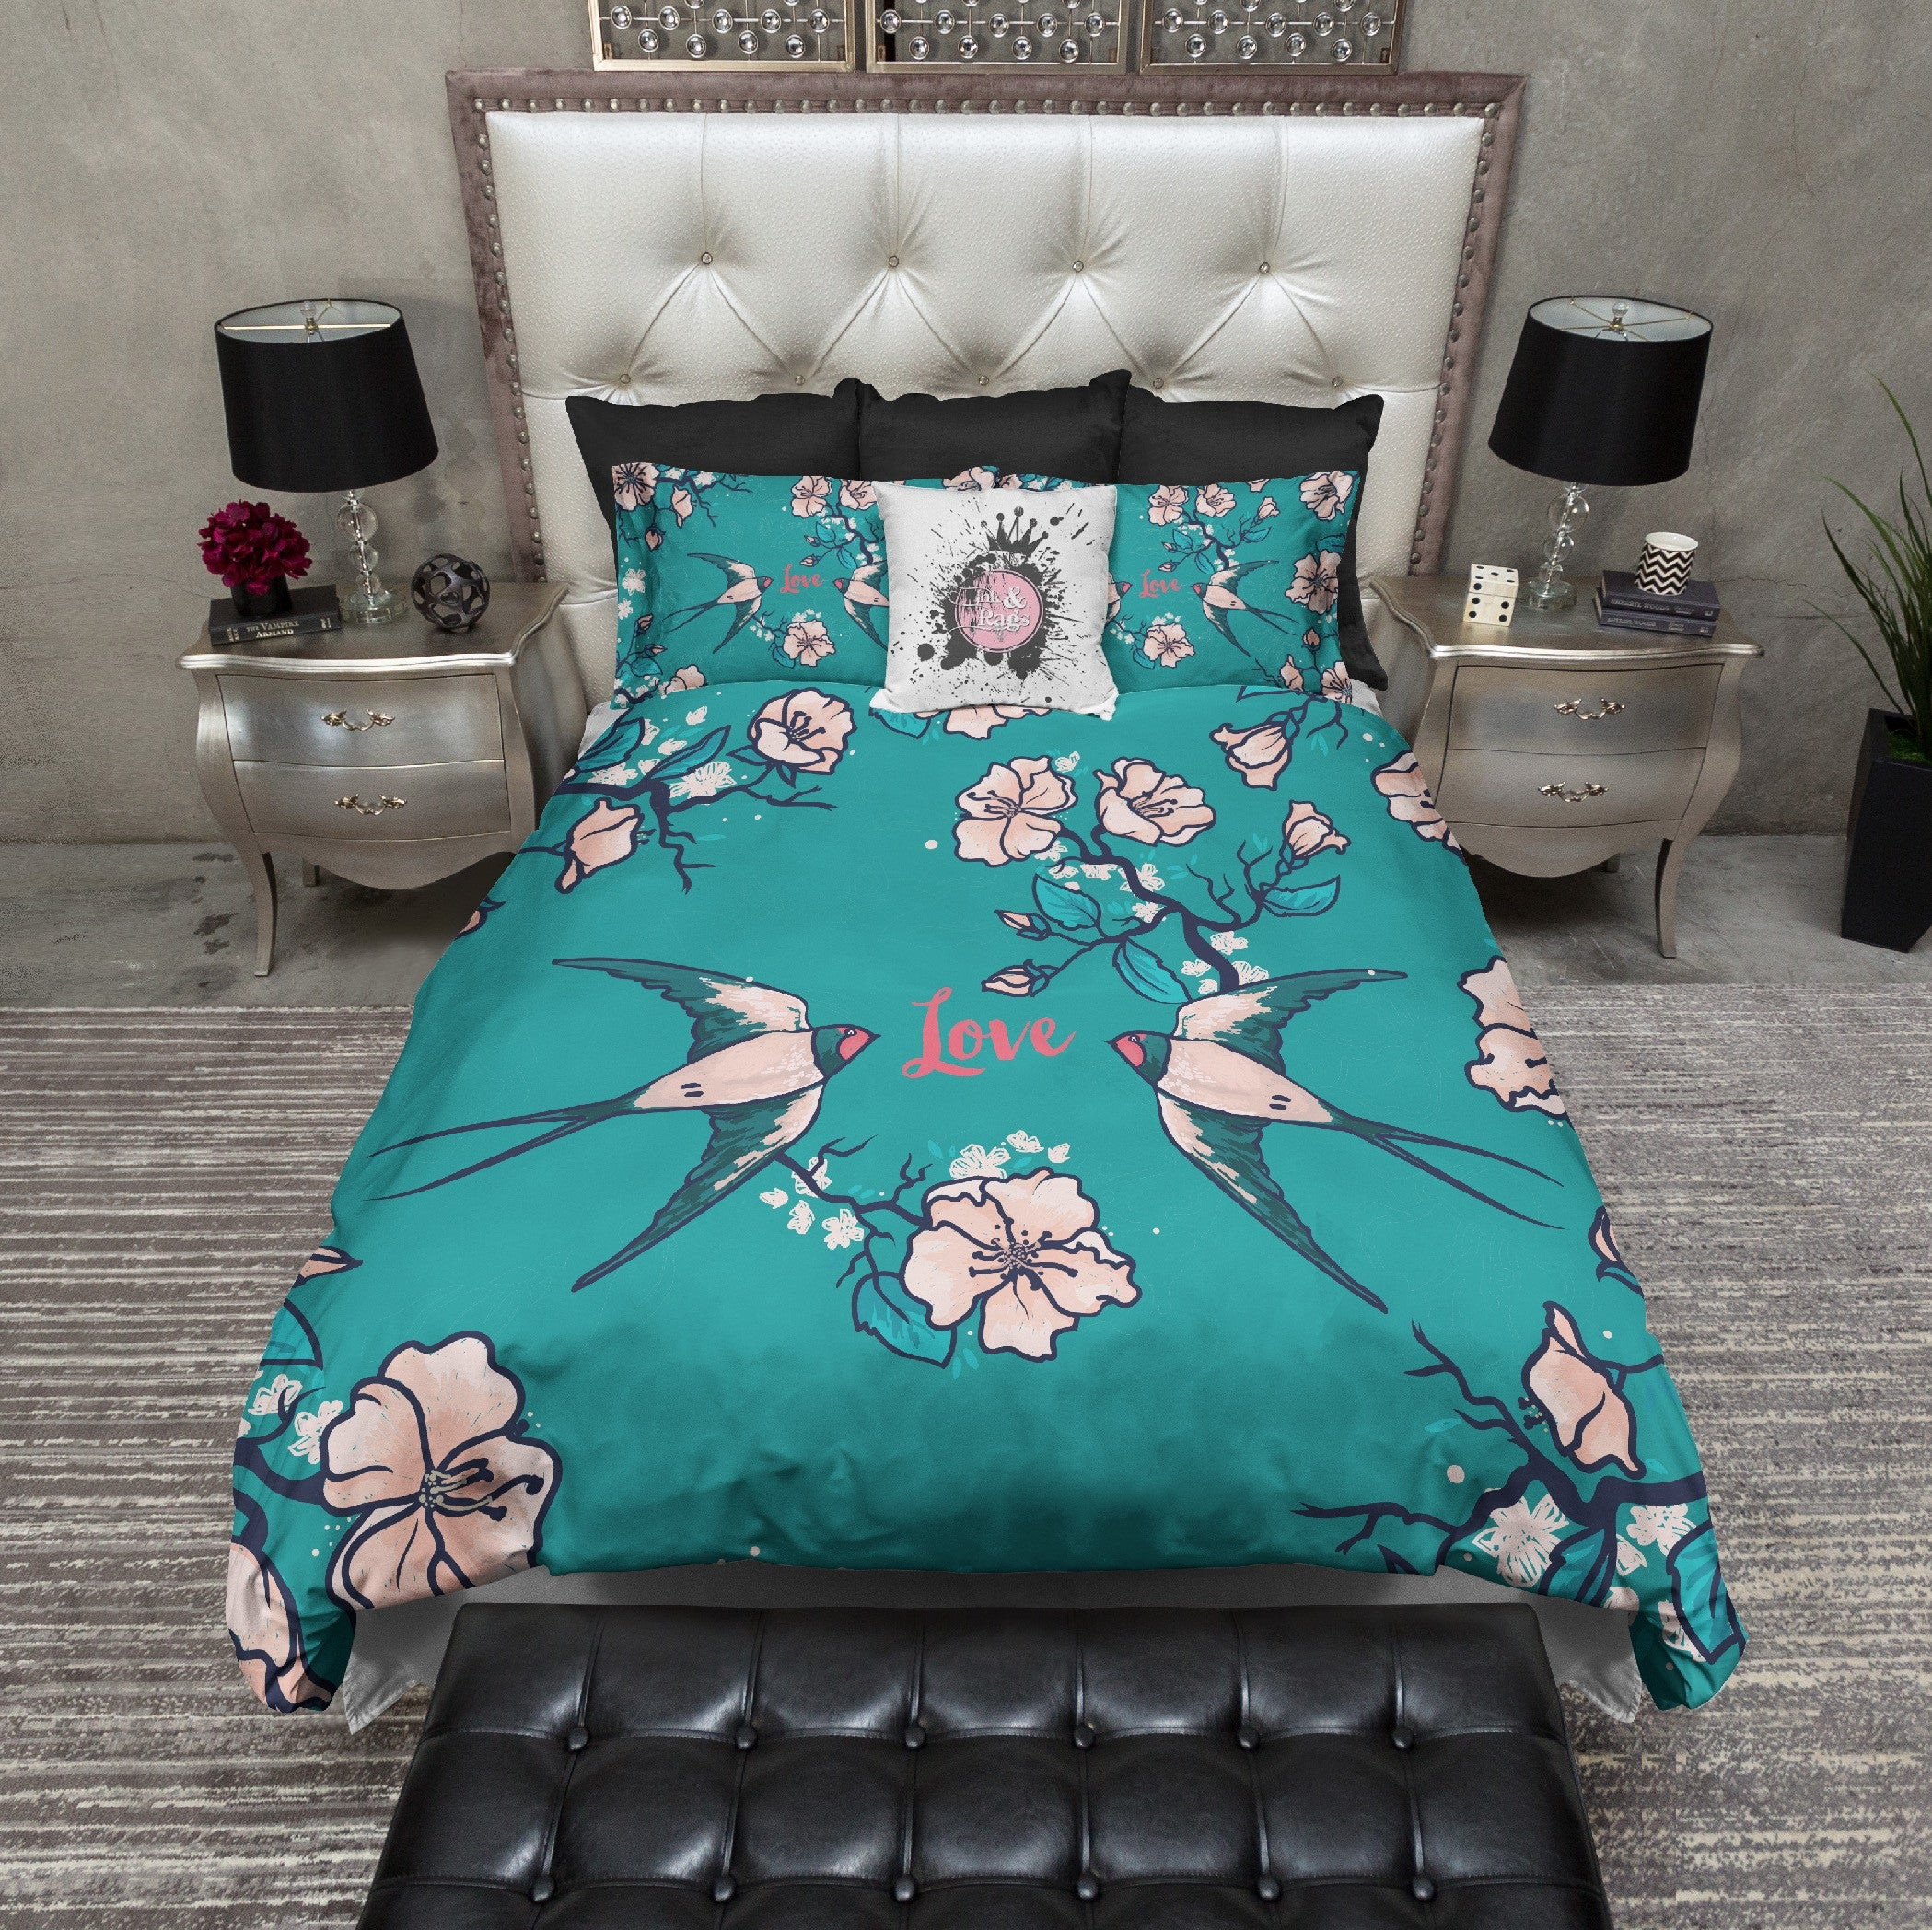 Love Birds Teal Swallow And Cherry Blossom Duvet Bedding